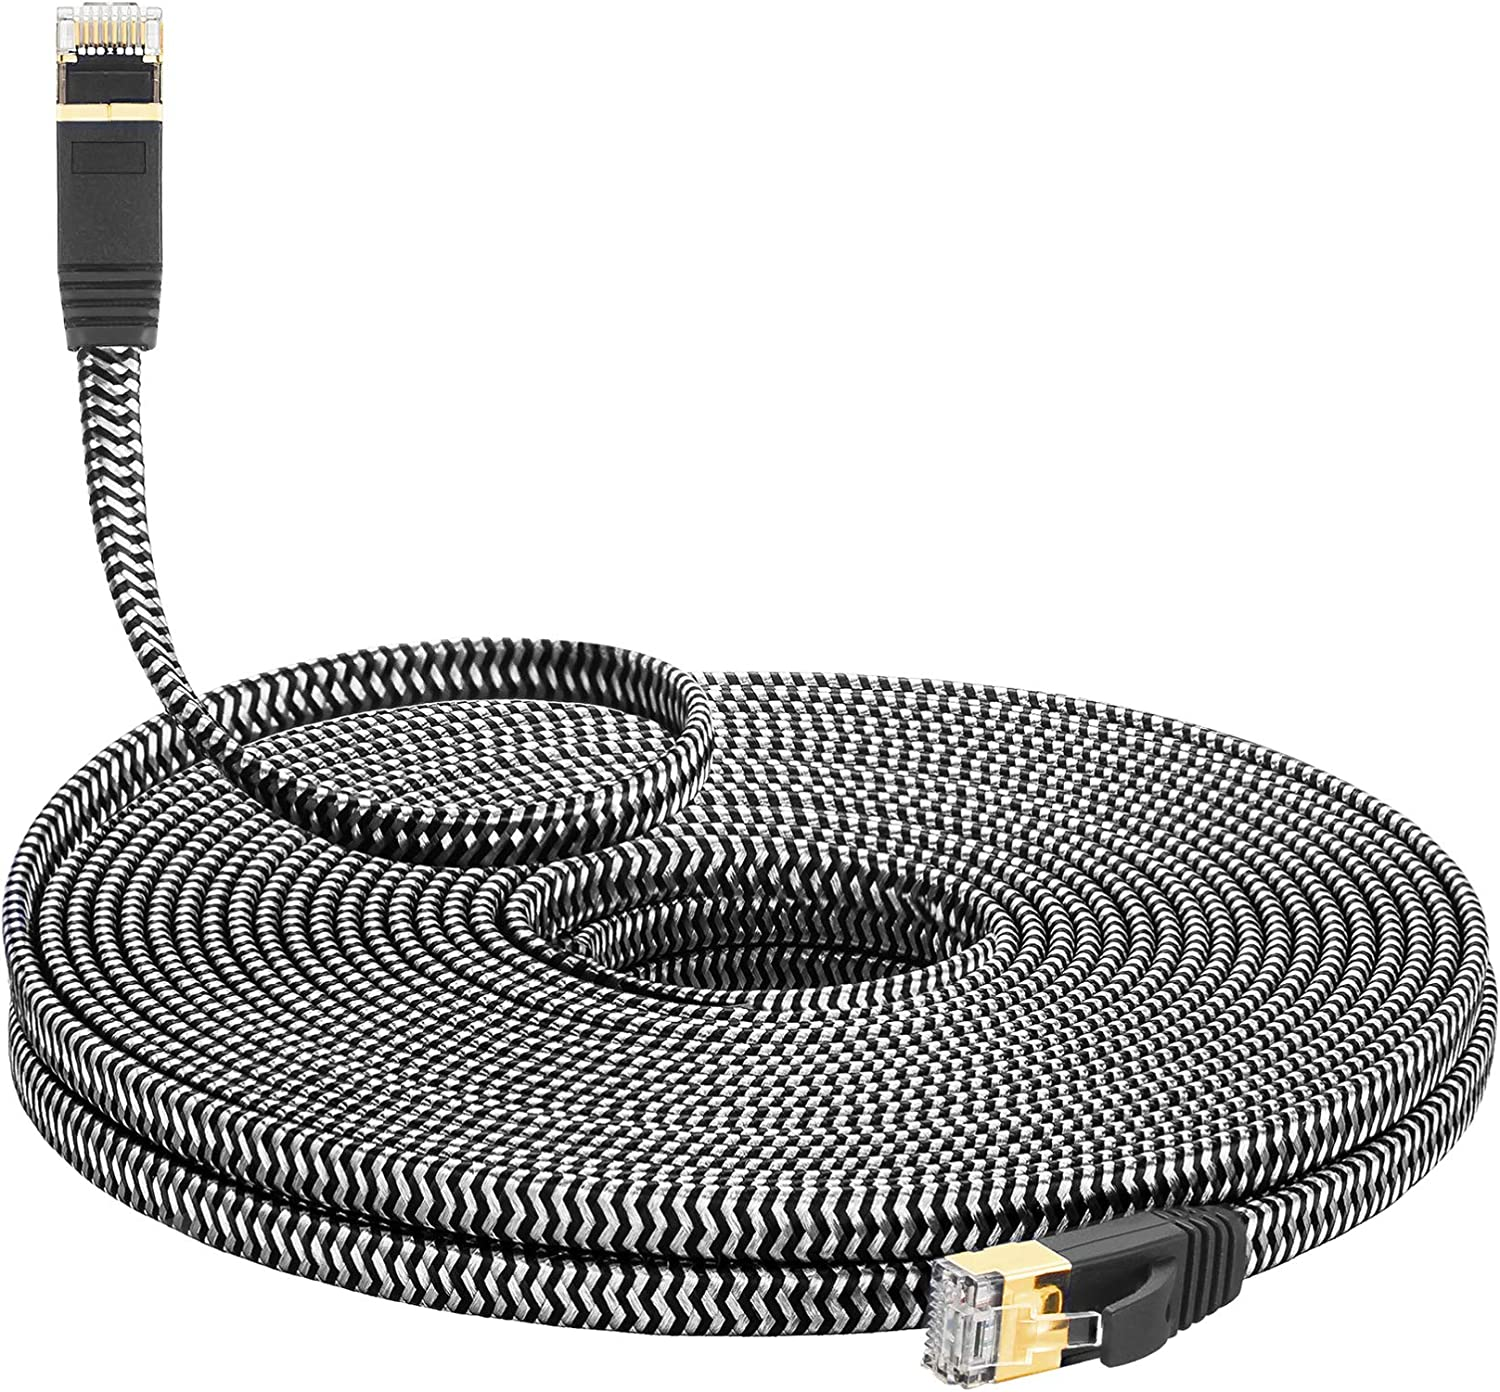 Cat 7 Ethernet Cable Now free shipping 100 ft Nylon Manufacturer direct delivery Braid MORELECS